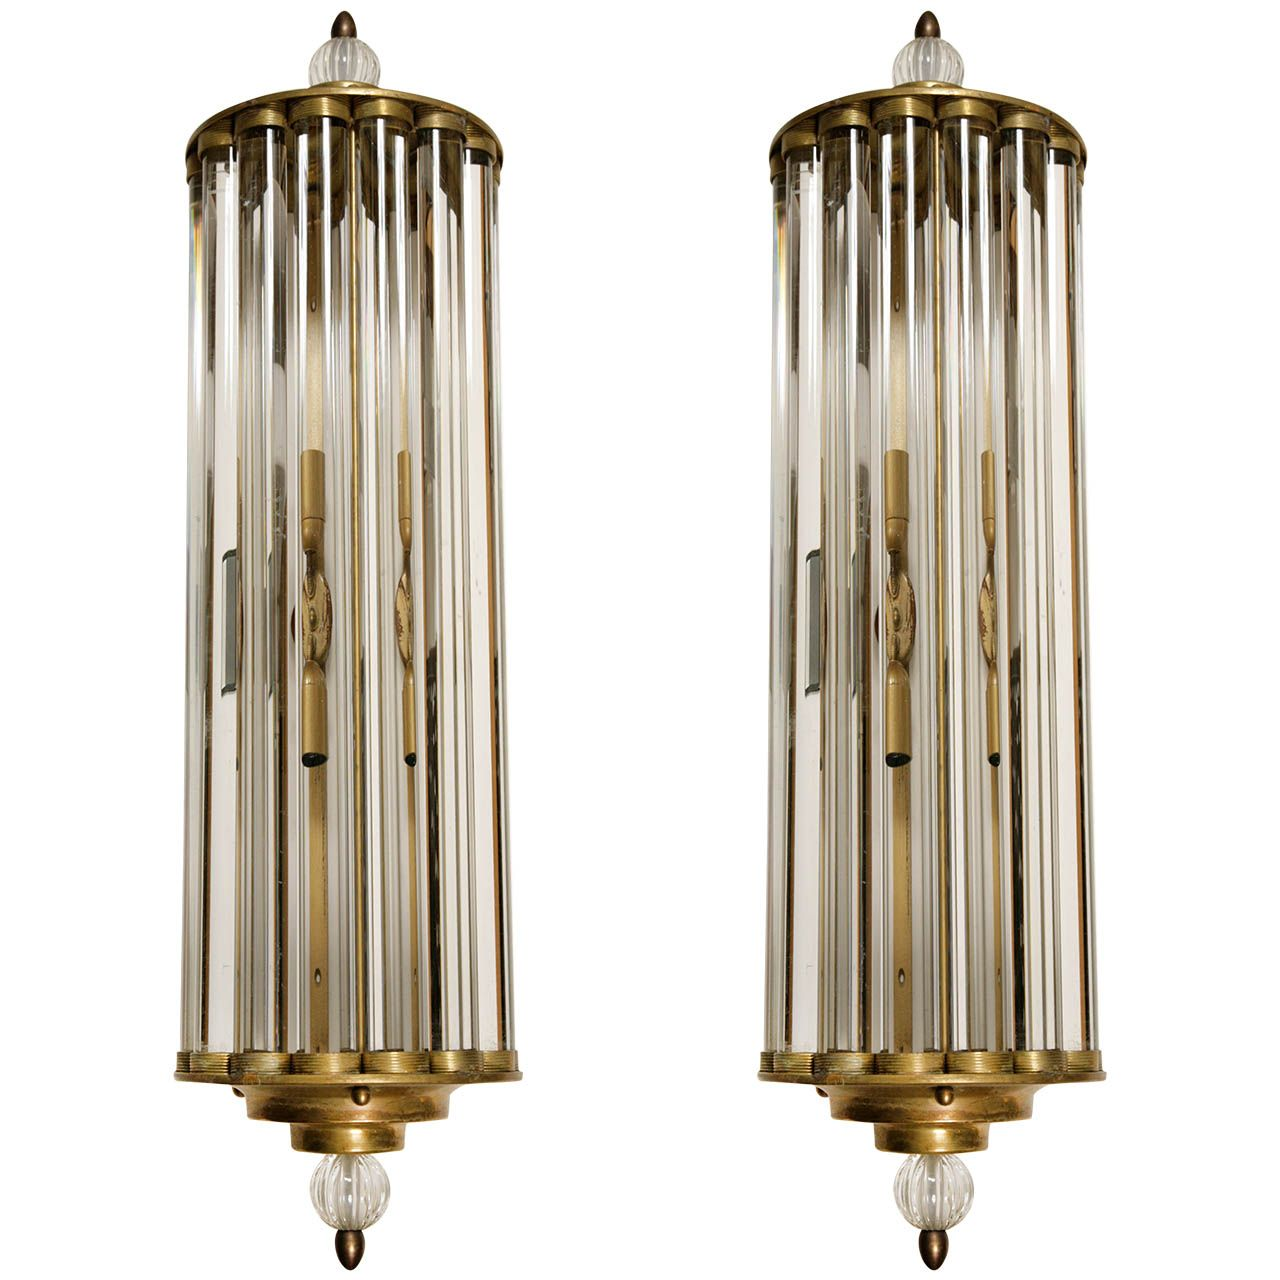 Pair Of 1940s Italian Wall Lights Signed Venini From A Unique Collection Antique And Modern Sconces At